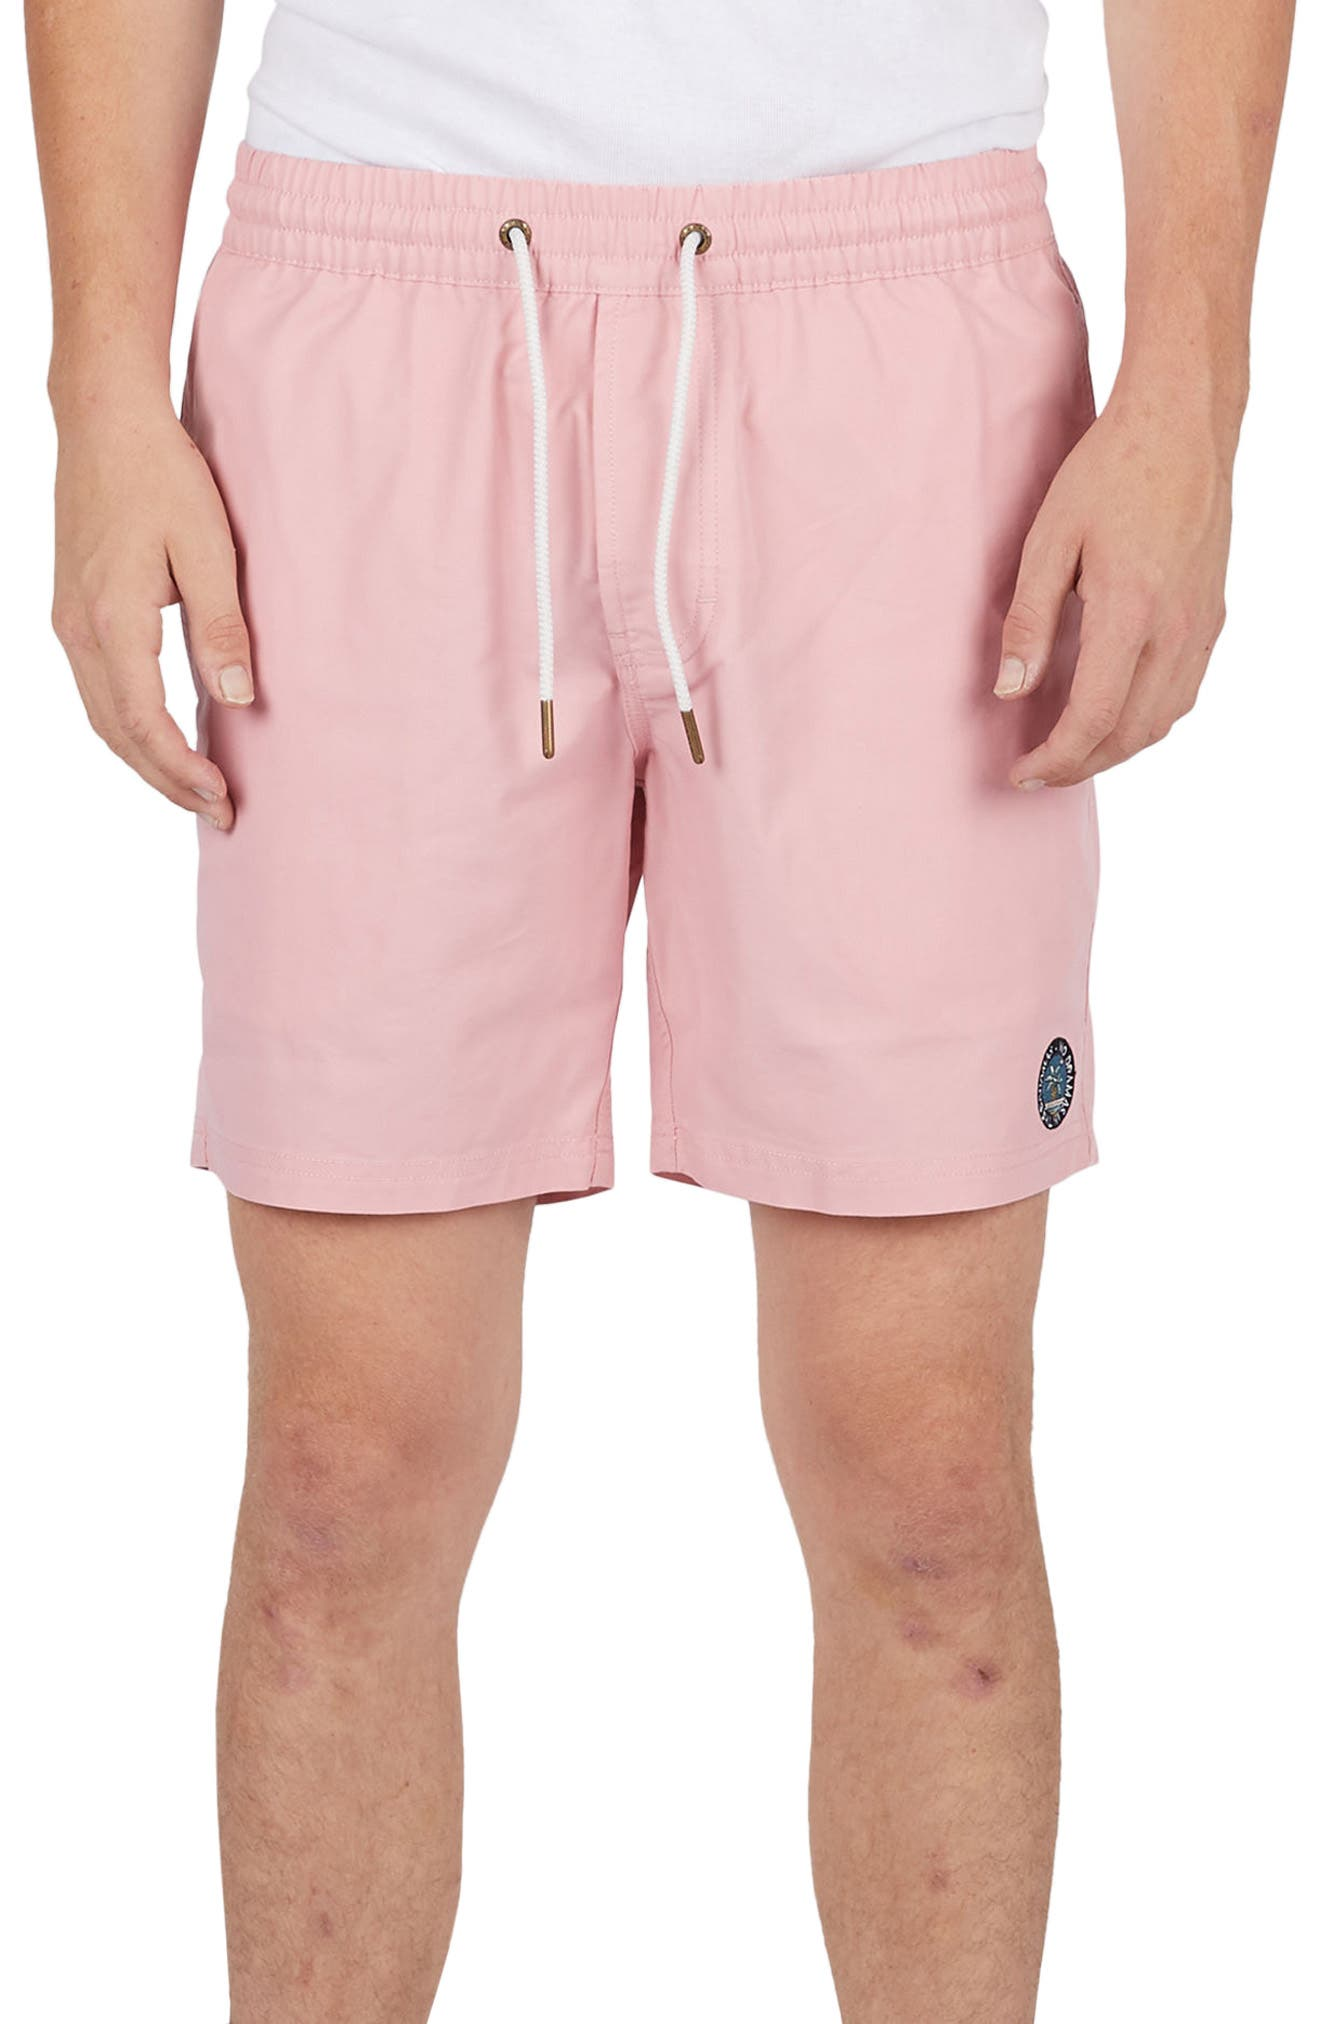 Amphibious Shorts,                         Main,                         color, Pink